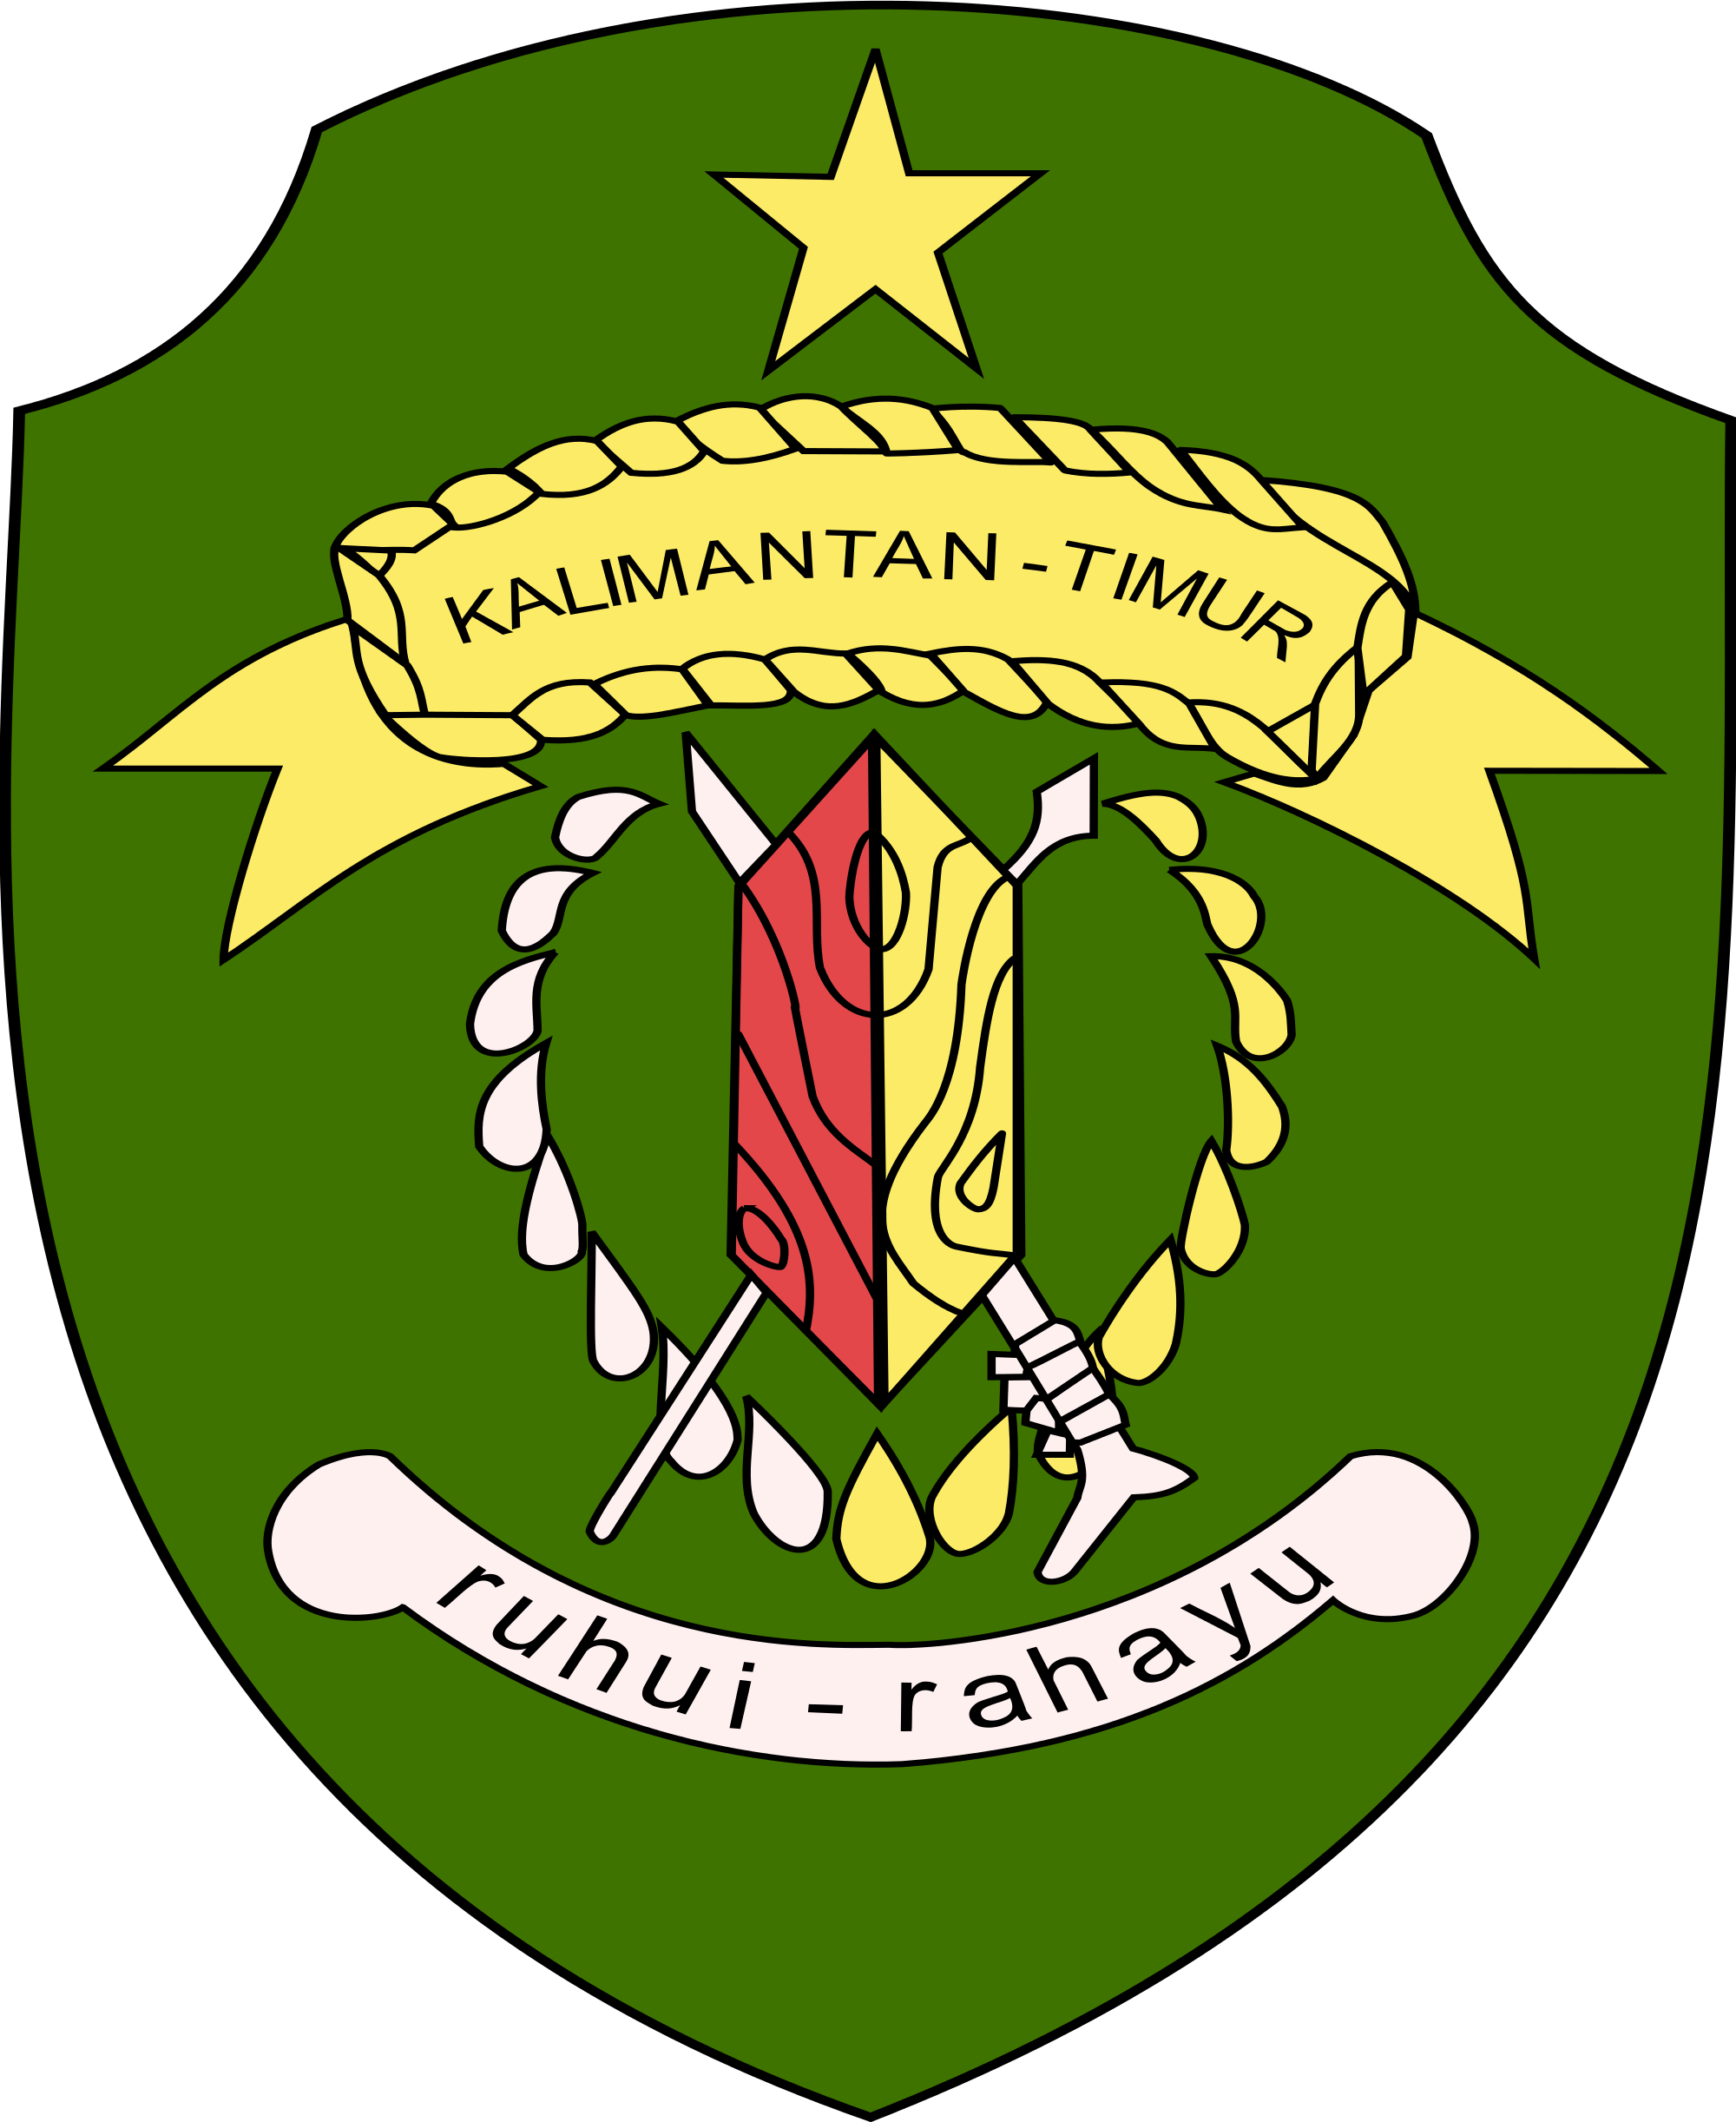 File:Coat of arms of East Kalimantan.svg.